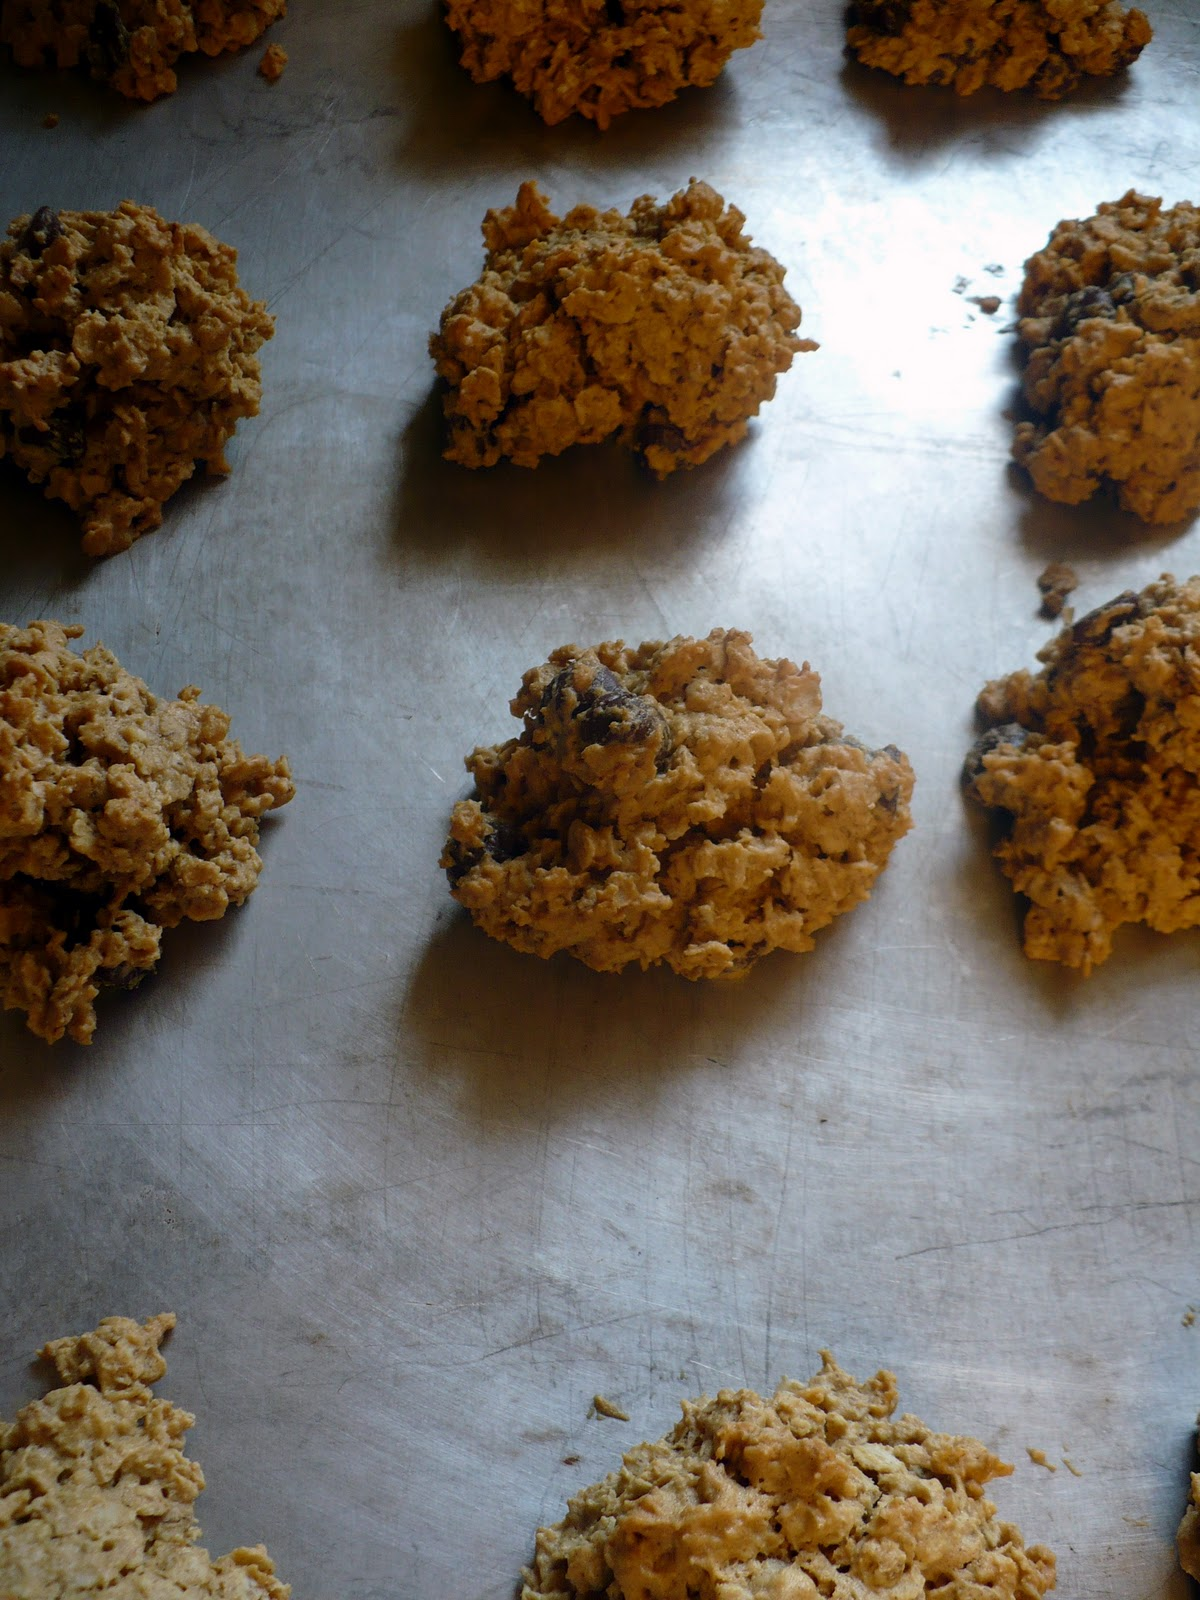 ... Tasty Cheapskate: Oatmeal Peanut Butter Breakfast Cookies (Low Sugar